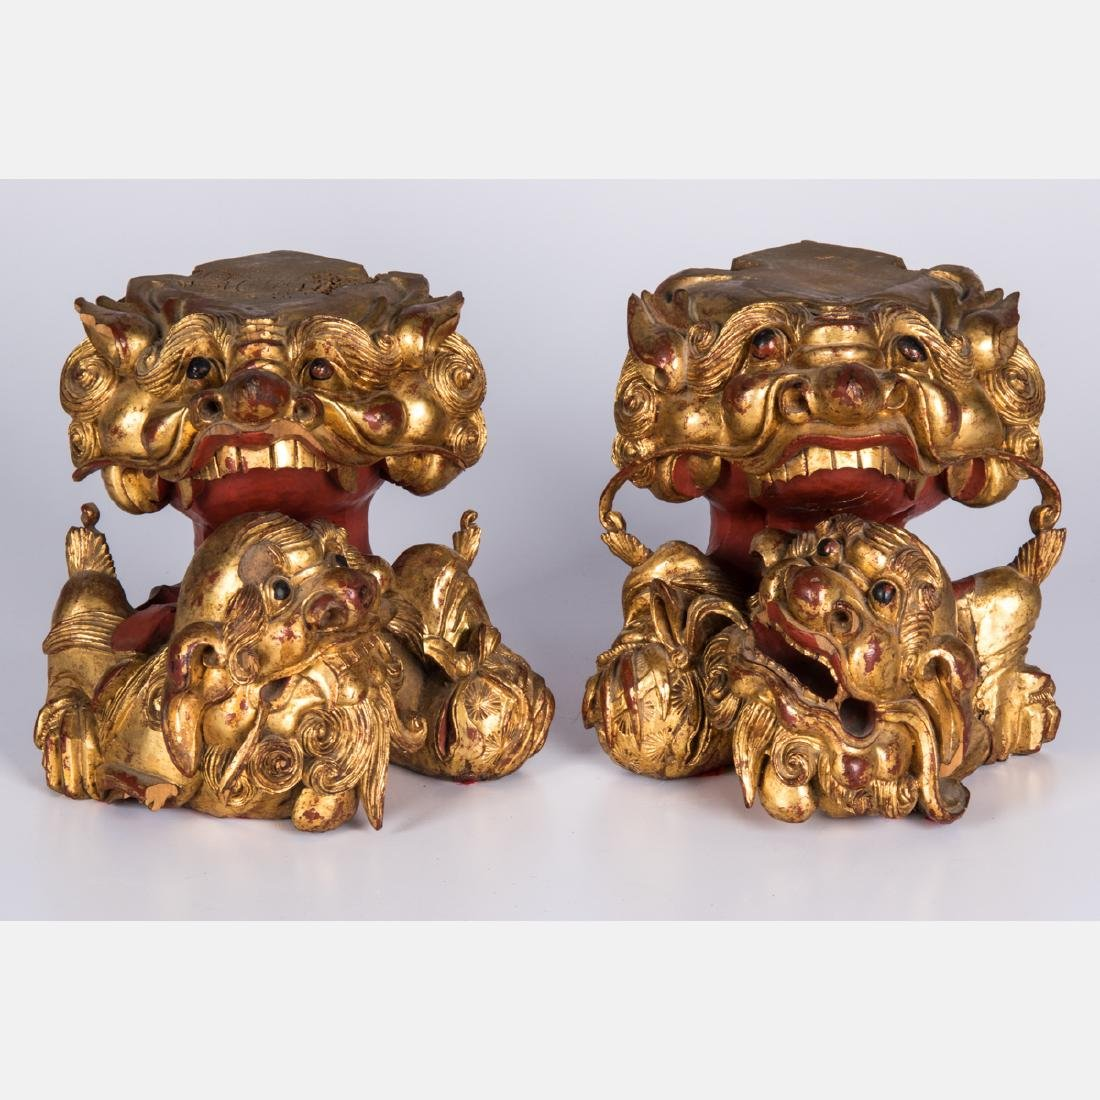 A Pair of Chinese Carved and Gilt Painted Wood Lion